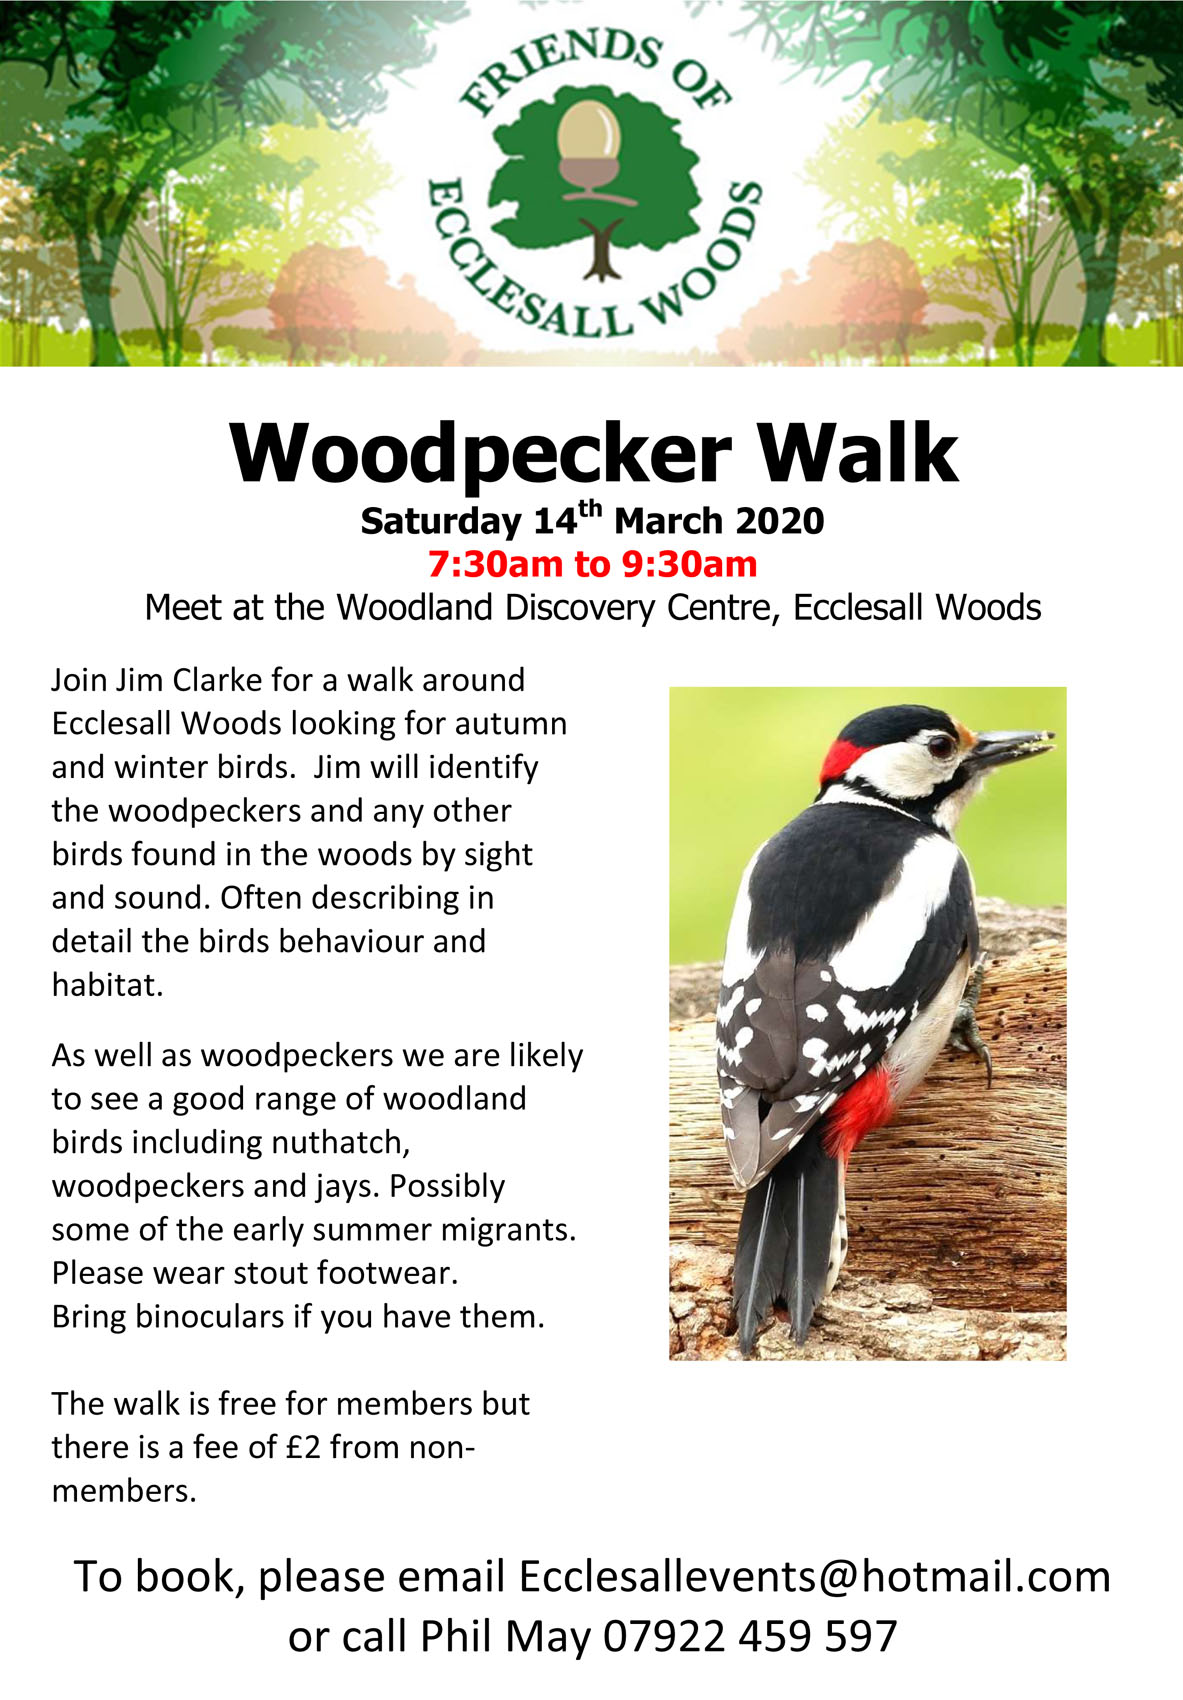 Woodpecker Walk at Ecclesall Woods – Saturday 14th March 2020